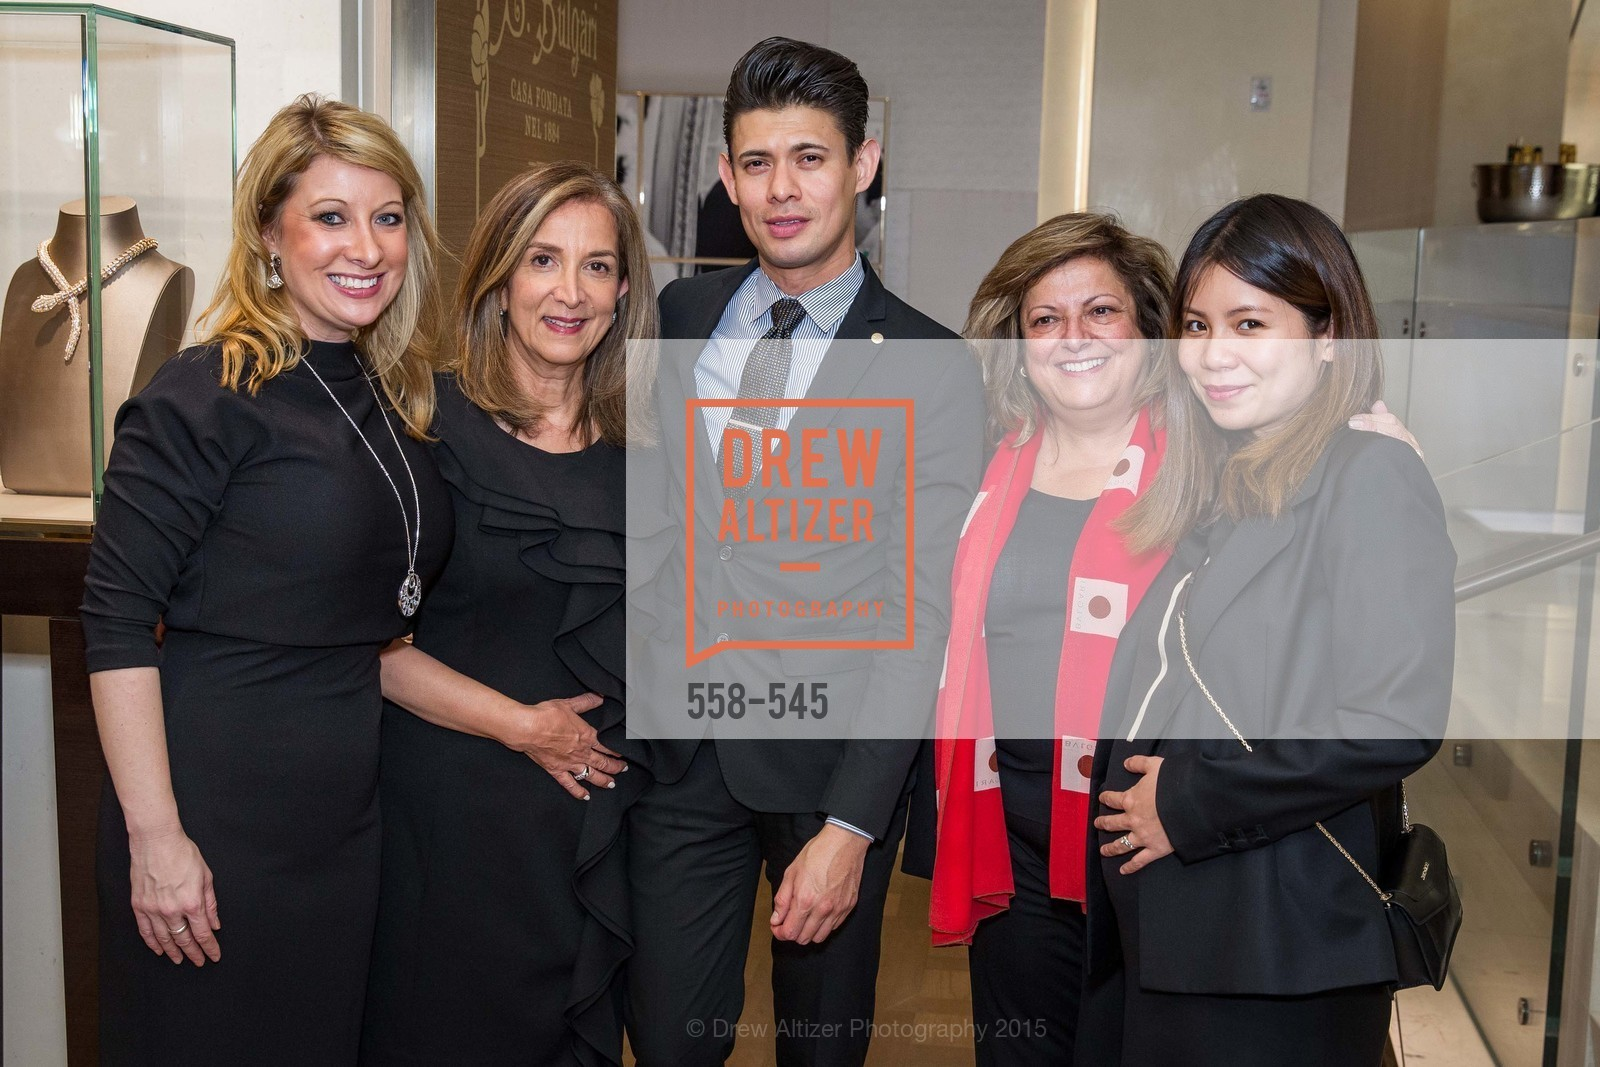 Jennifer Mancuso, Alvaro Ibara, Laura Albini, Hoi Lam, Bulgari Presents B.Cocktail, Bulgari. 200 Stockton Street, November 17th, 2015,Drew Altizer, Drew Altizer Photography, full-service agency, private events, San Francisco photographer, photographer california